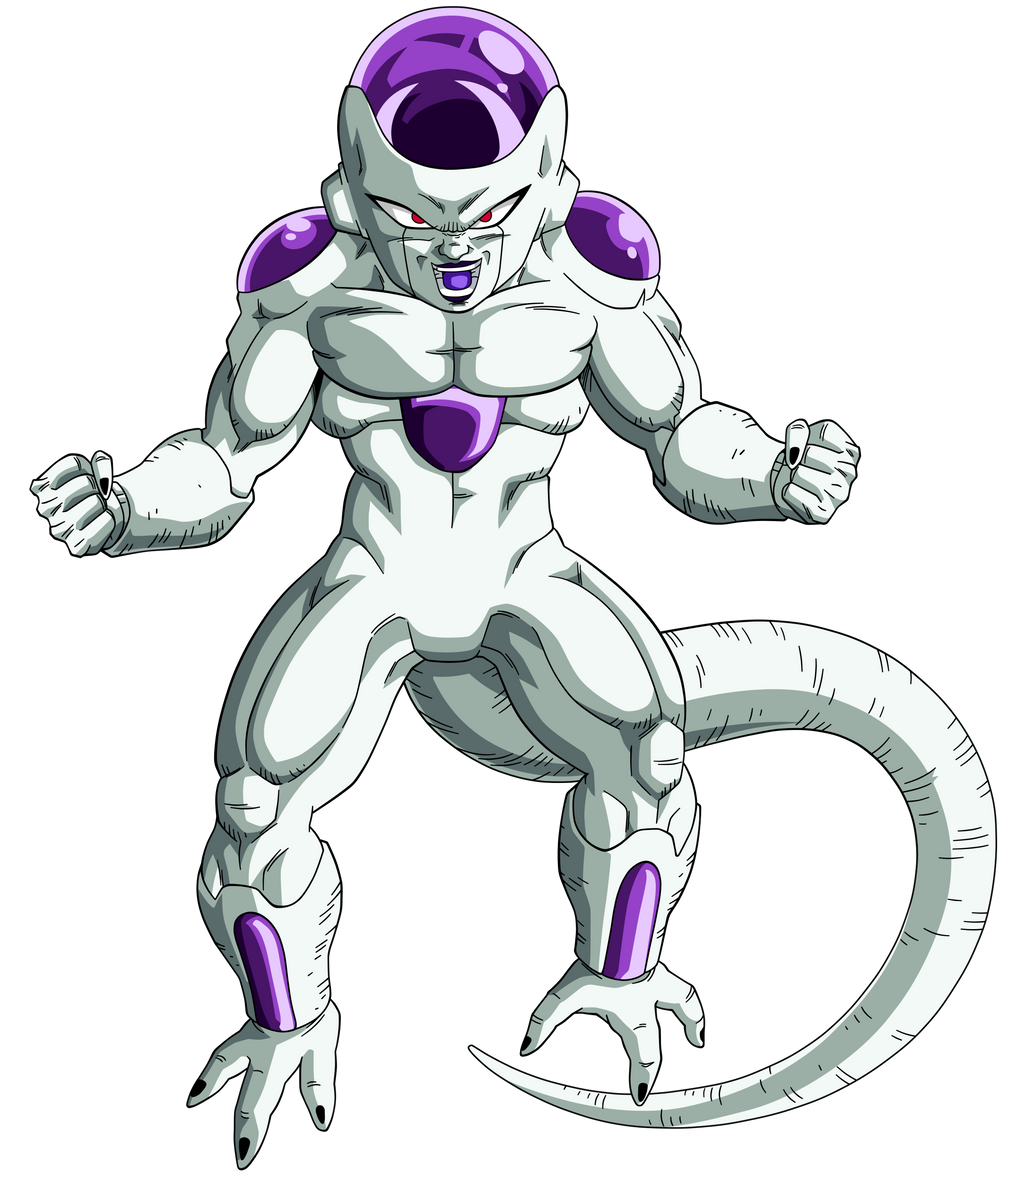 Frieza Final Form by maffo1989 on DeviantArt